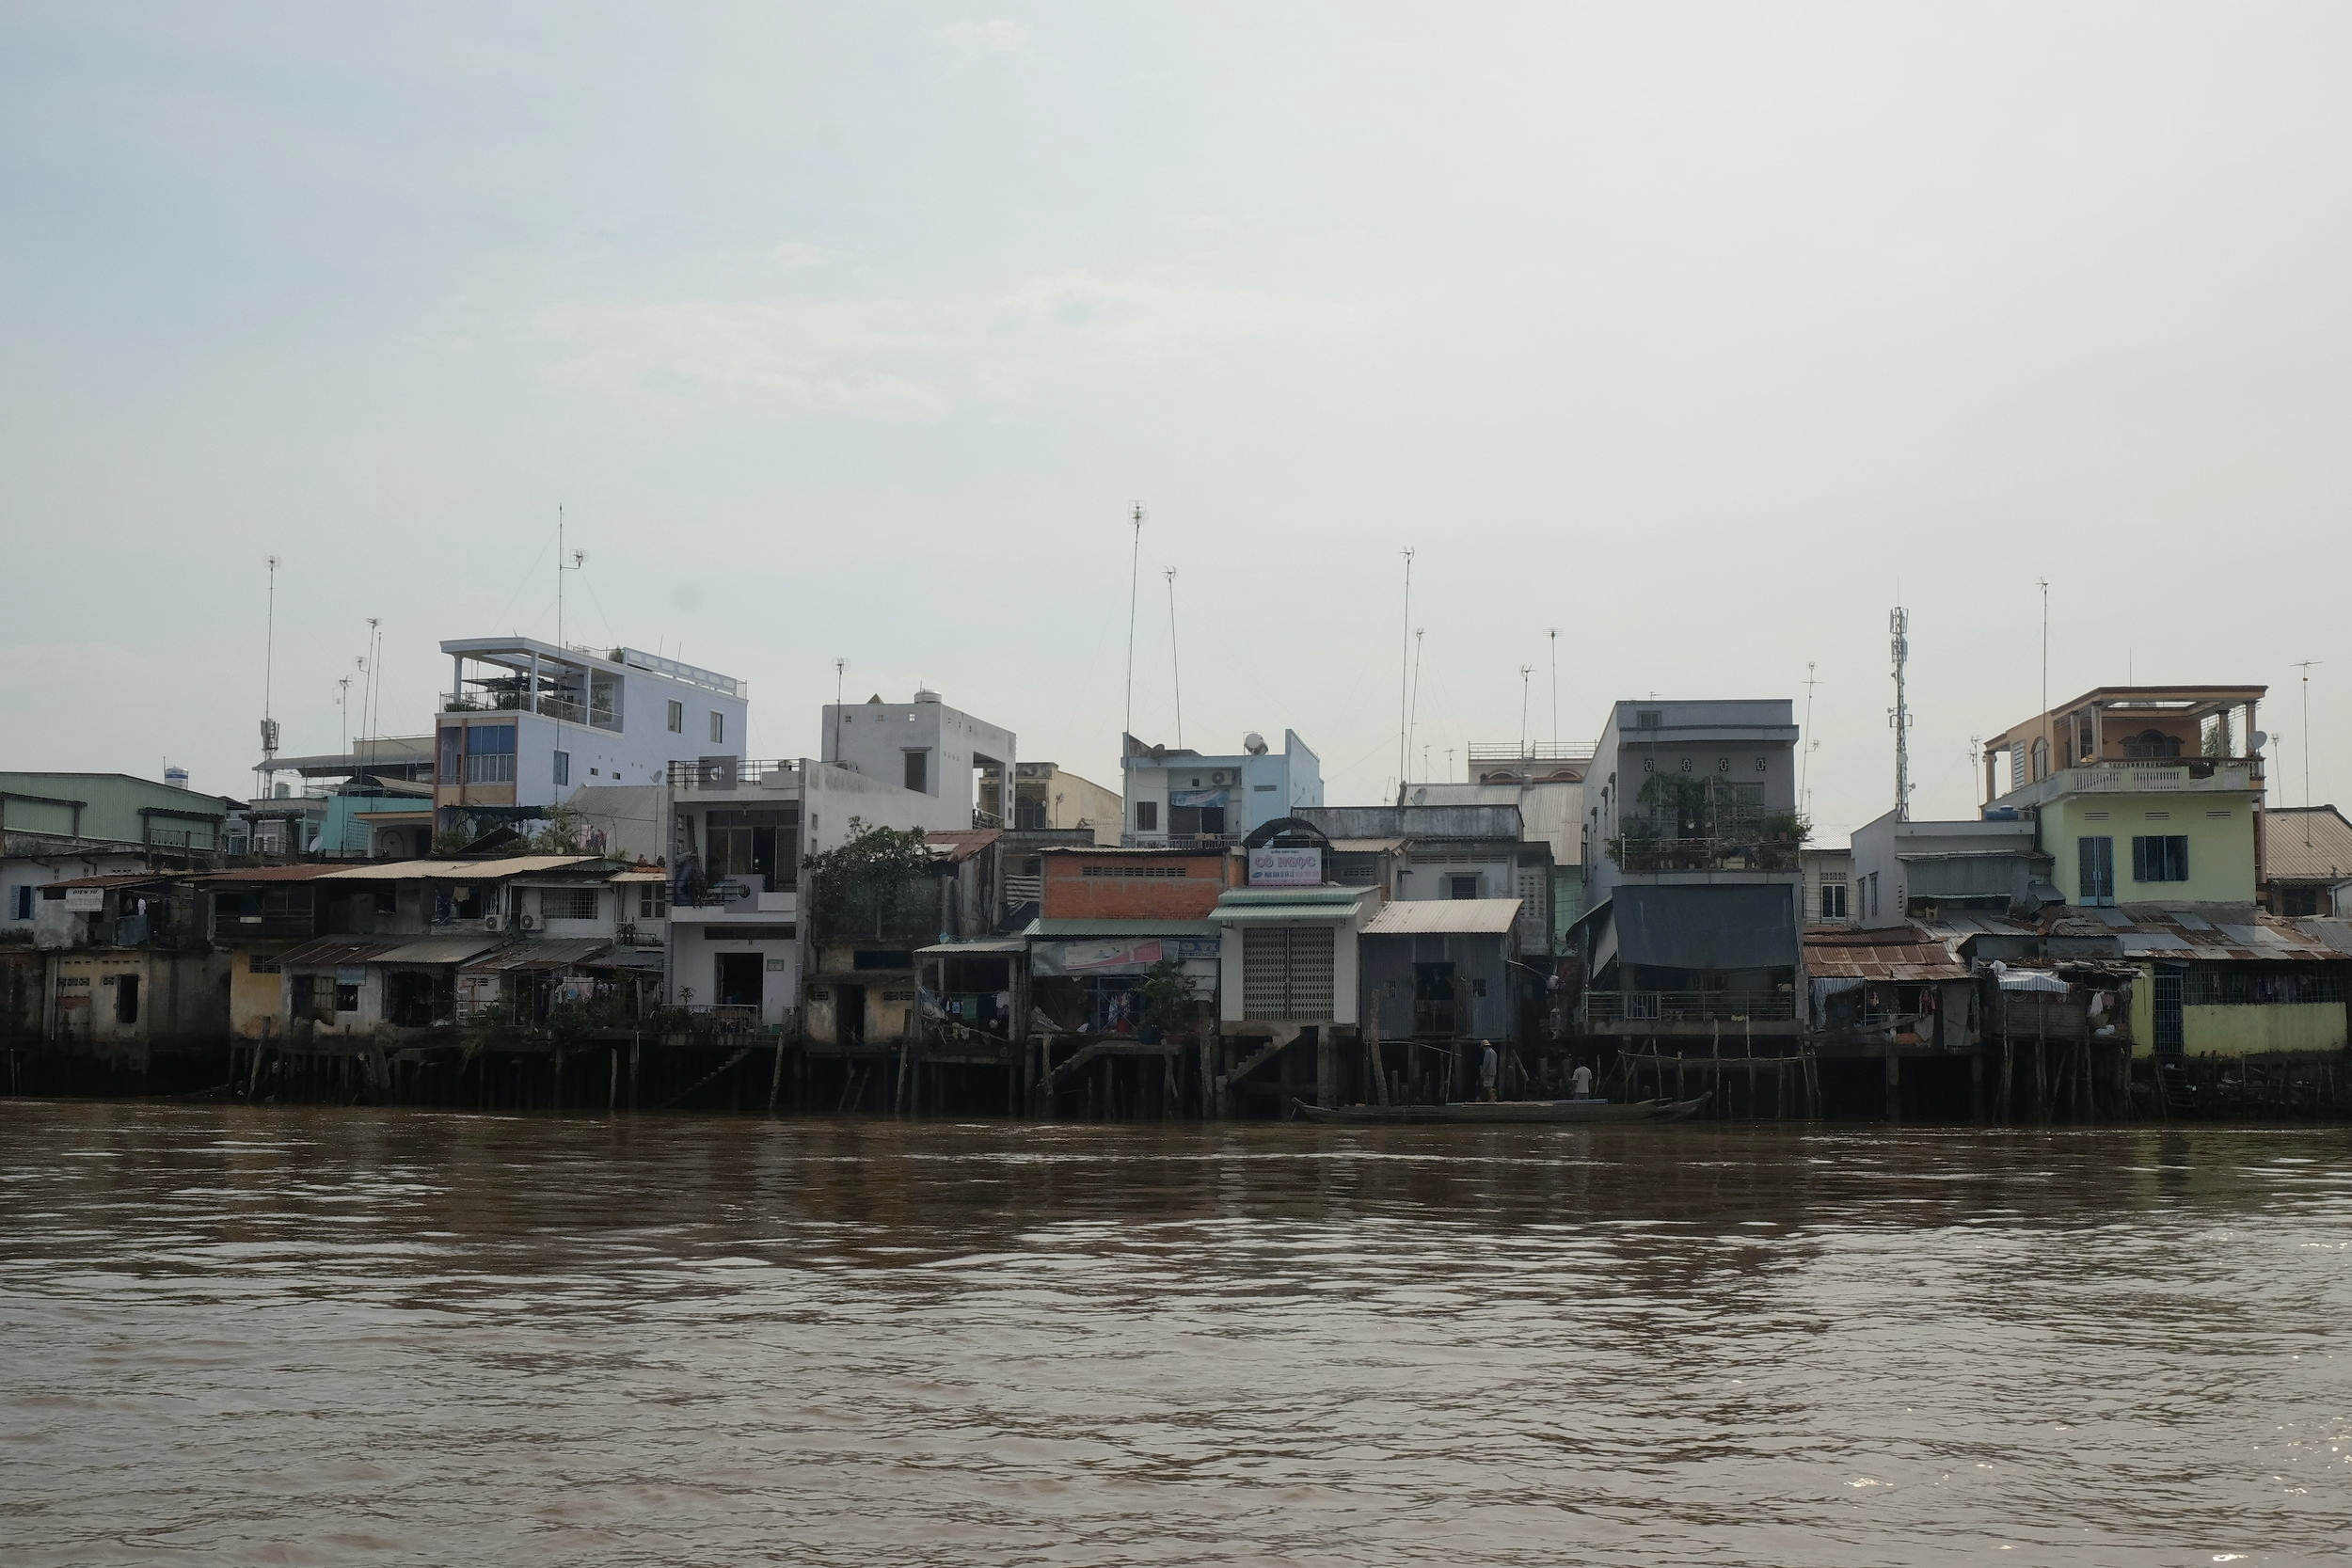 Along the Mekong River